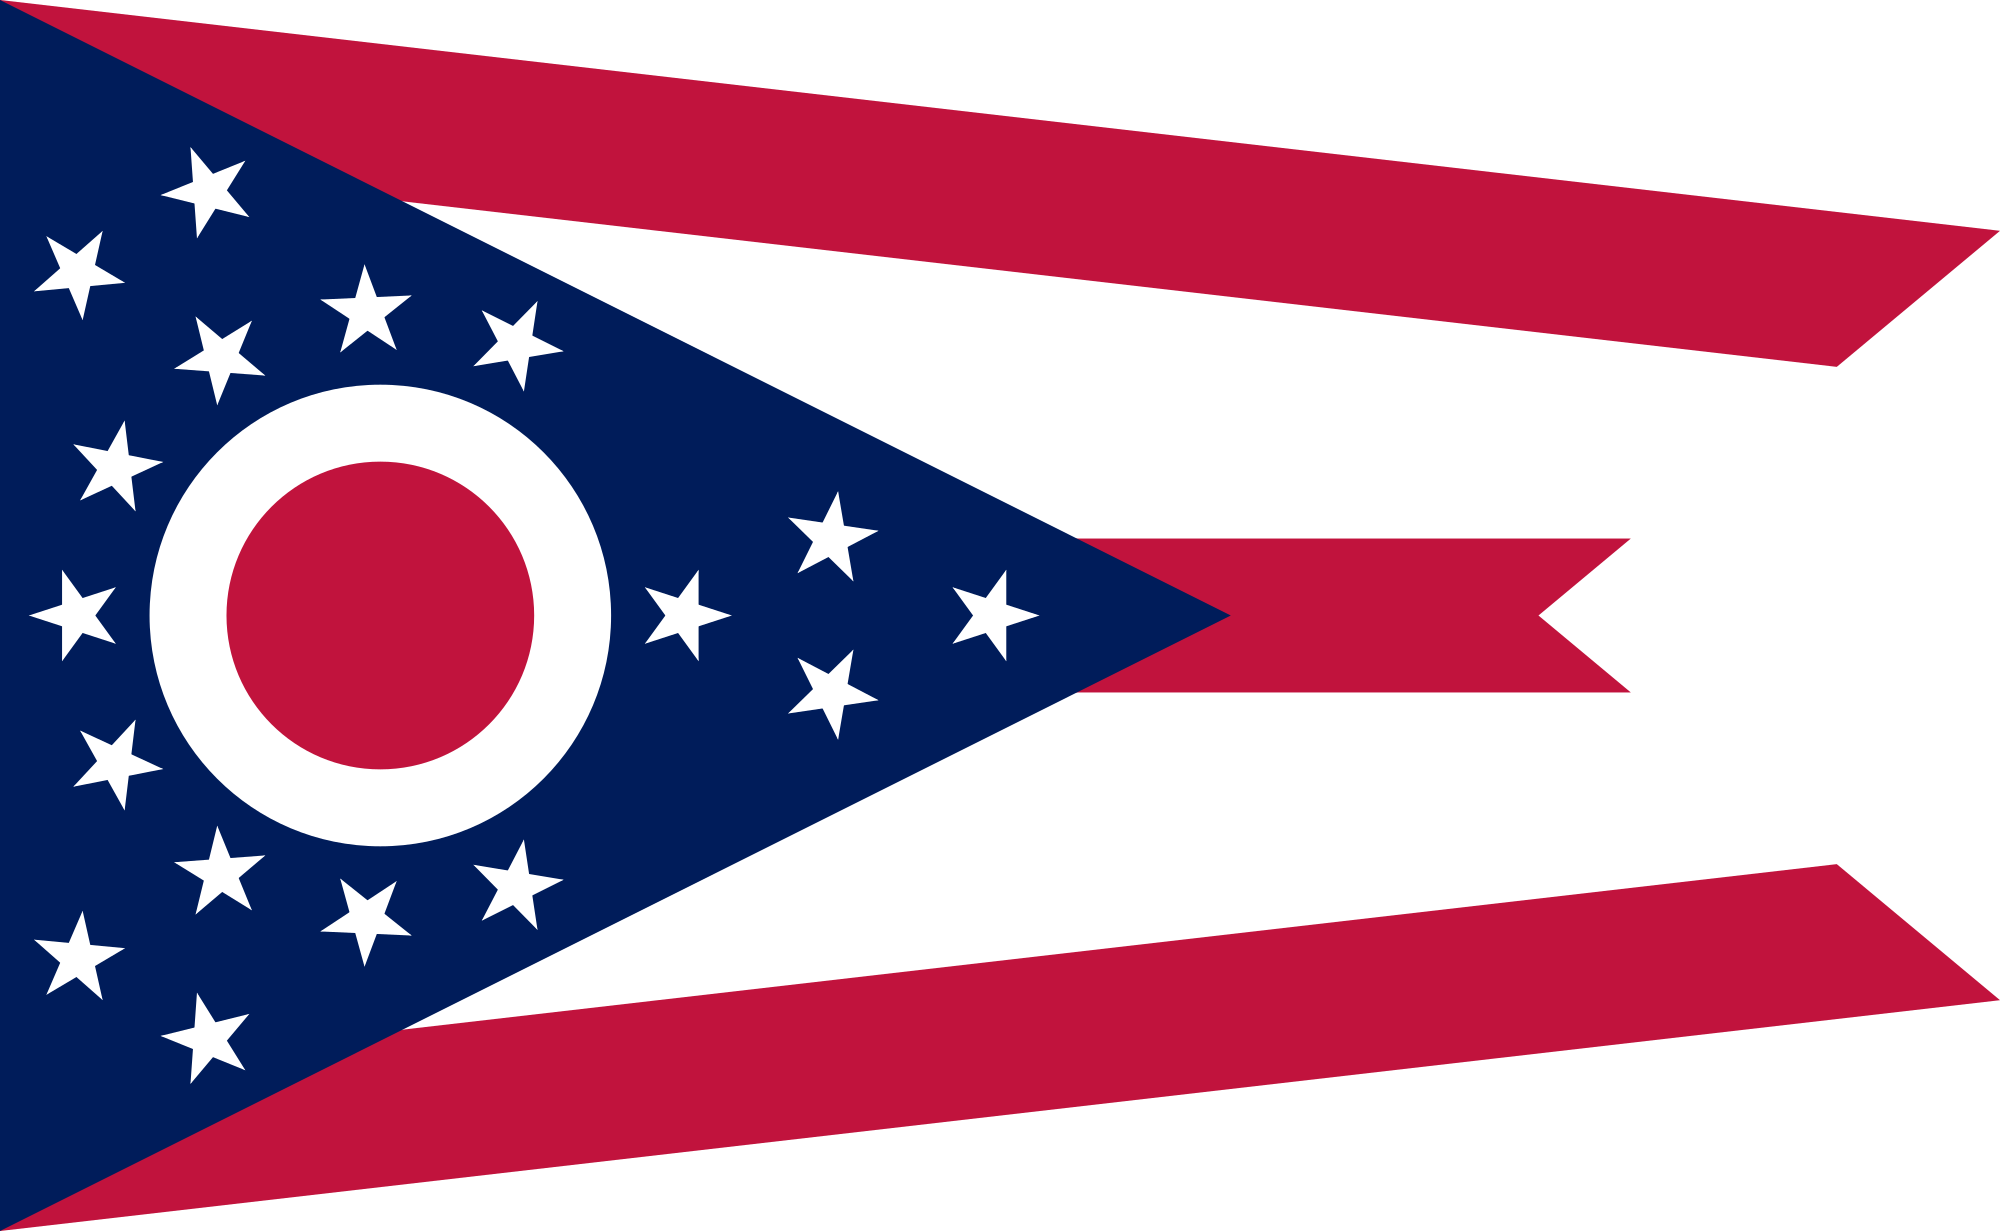 Usa flag star black and white clipart vector black and white Flag of Ohio - Wikipedia vector black and white